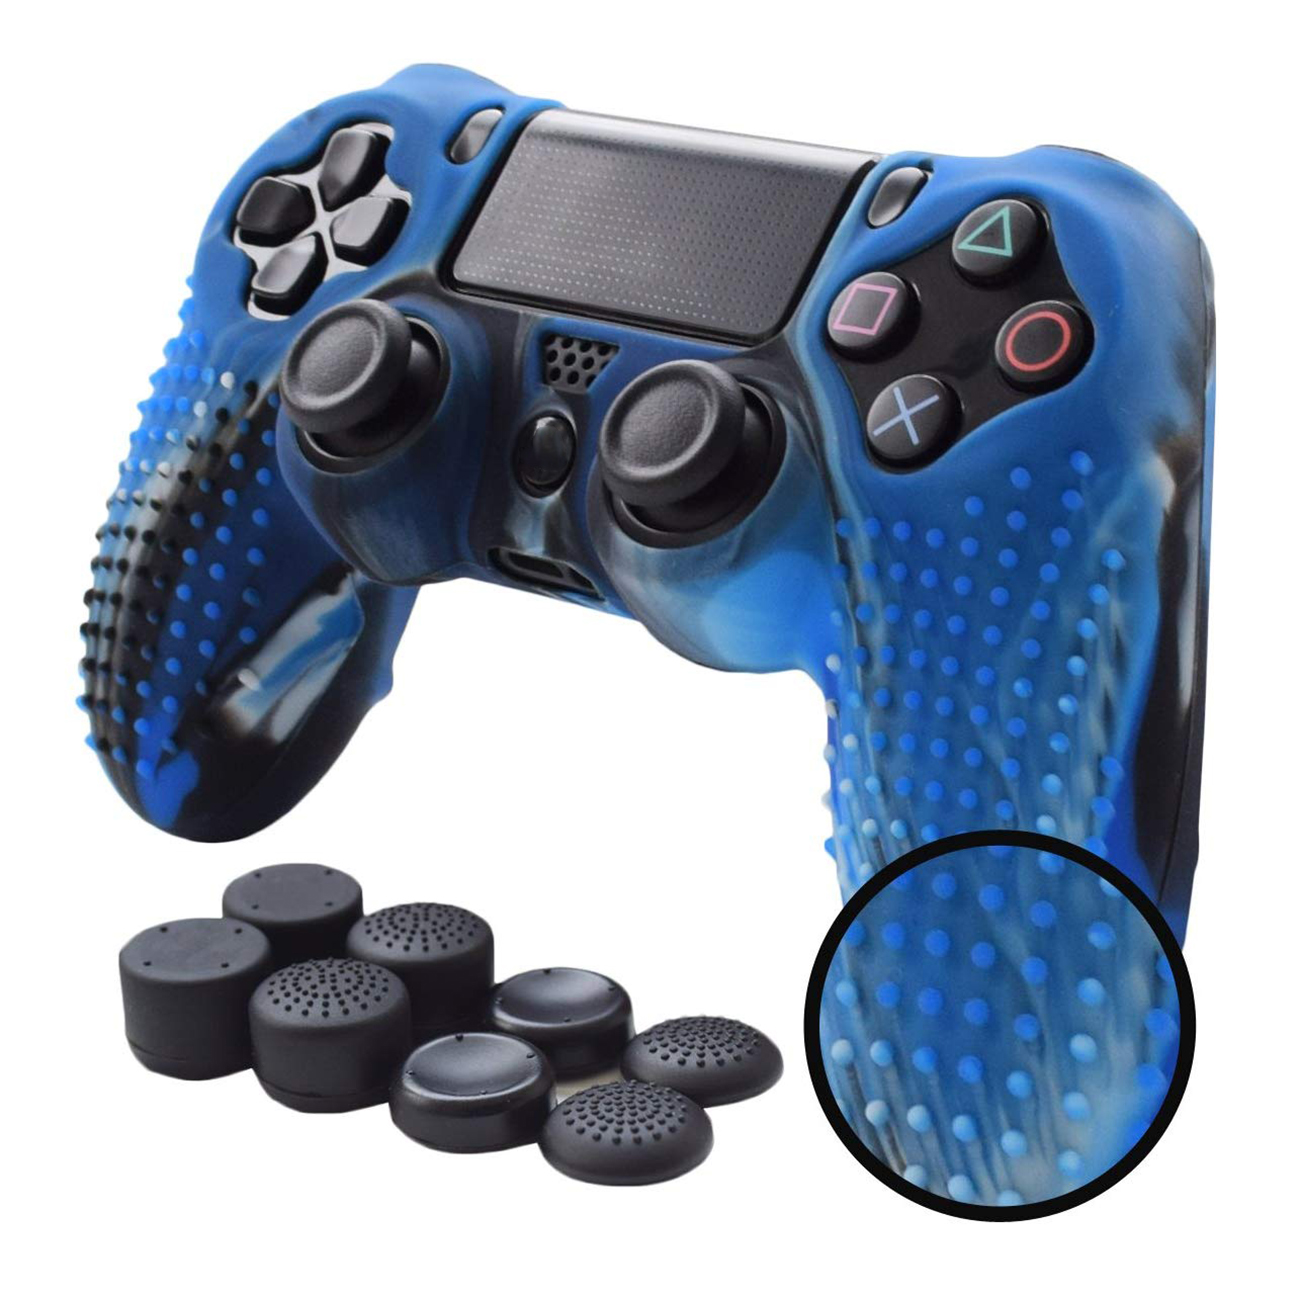 Anti-slip Silicone Cover Skin Grip Compatible for PS4 /SLIM /PRO controller(Camouflage controller skin x 1 + FPS PRO Thumb Gri image